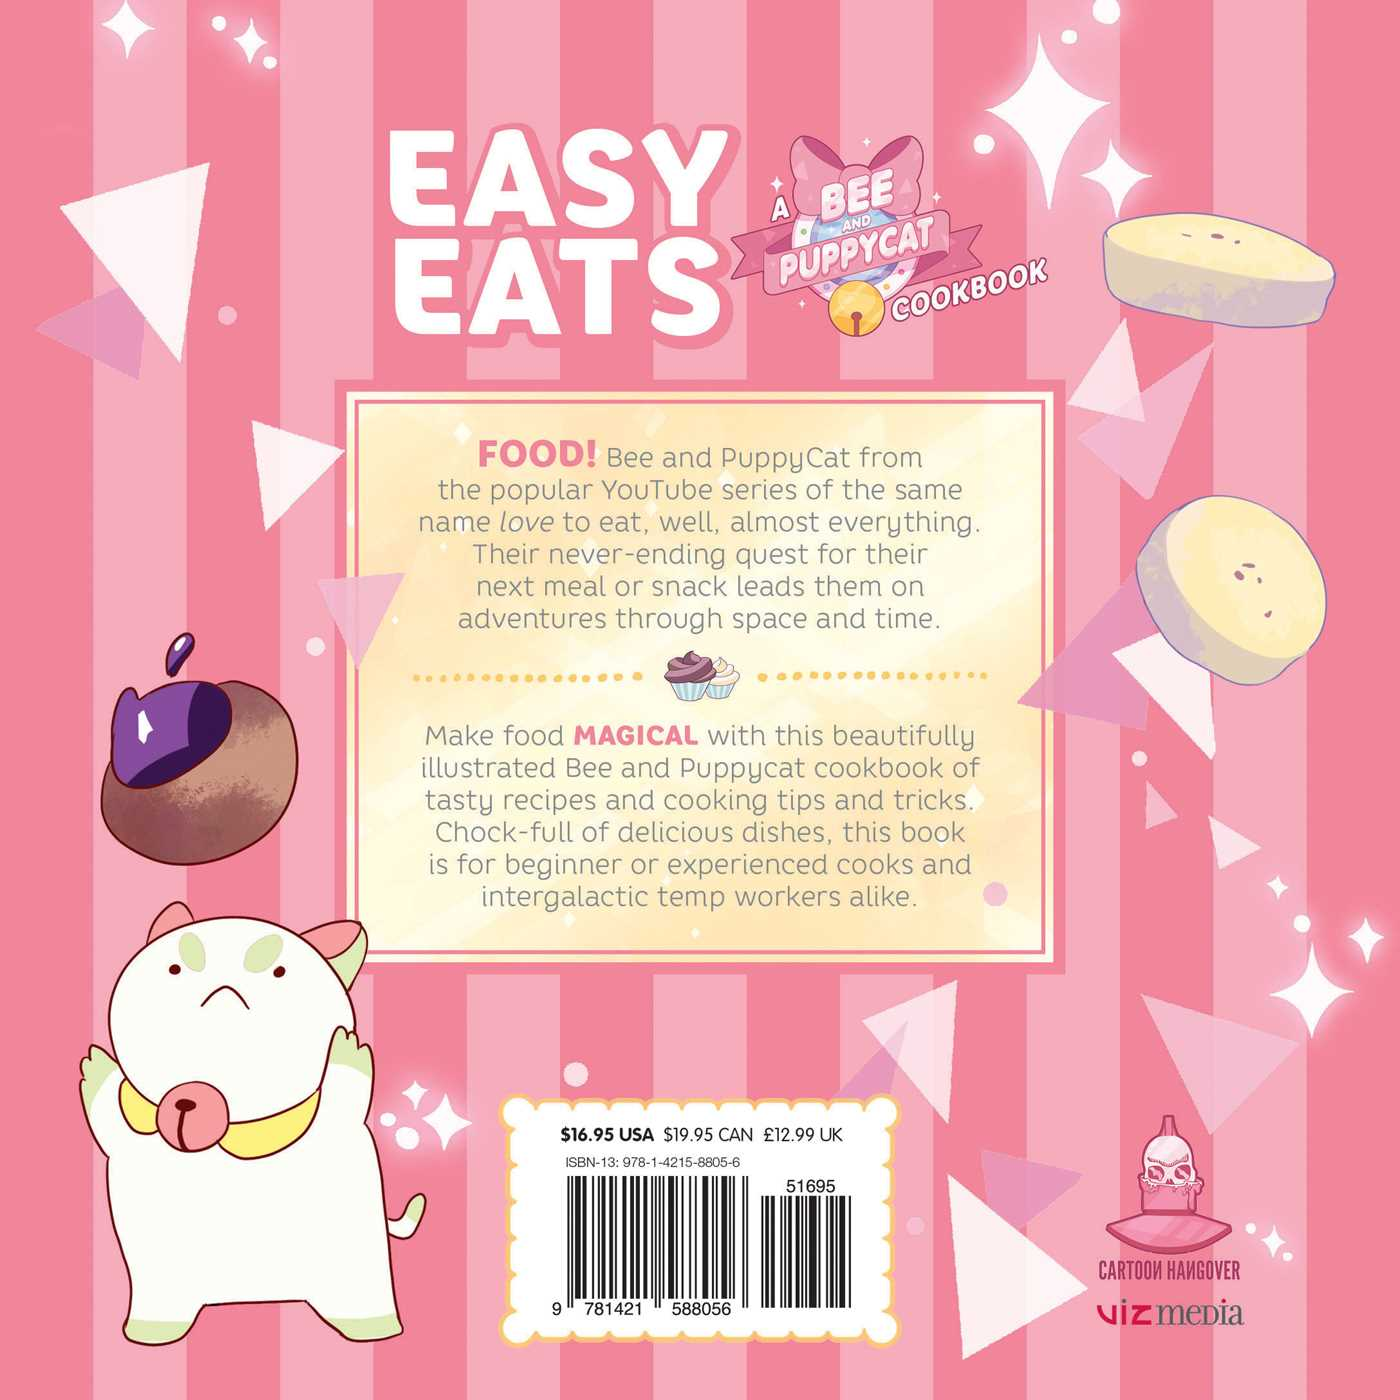 Easy eats a bee and puppycat cookbook book by natasha allegri easy eats a bee and puppycat cookbook 9781421588056 hr back forumfinder Choice Image